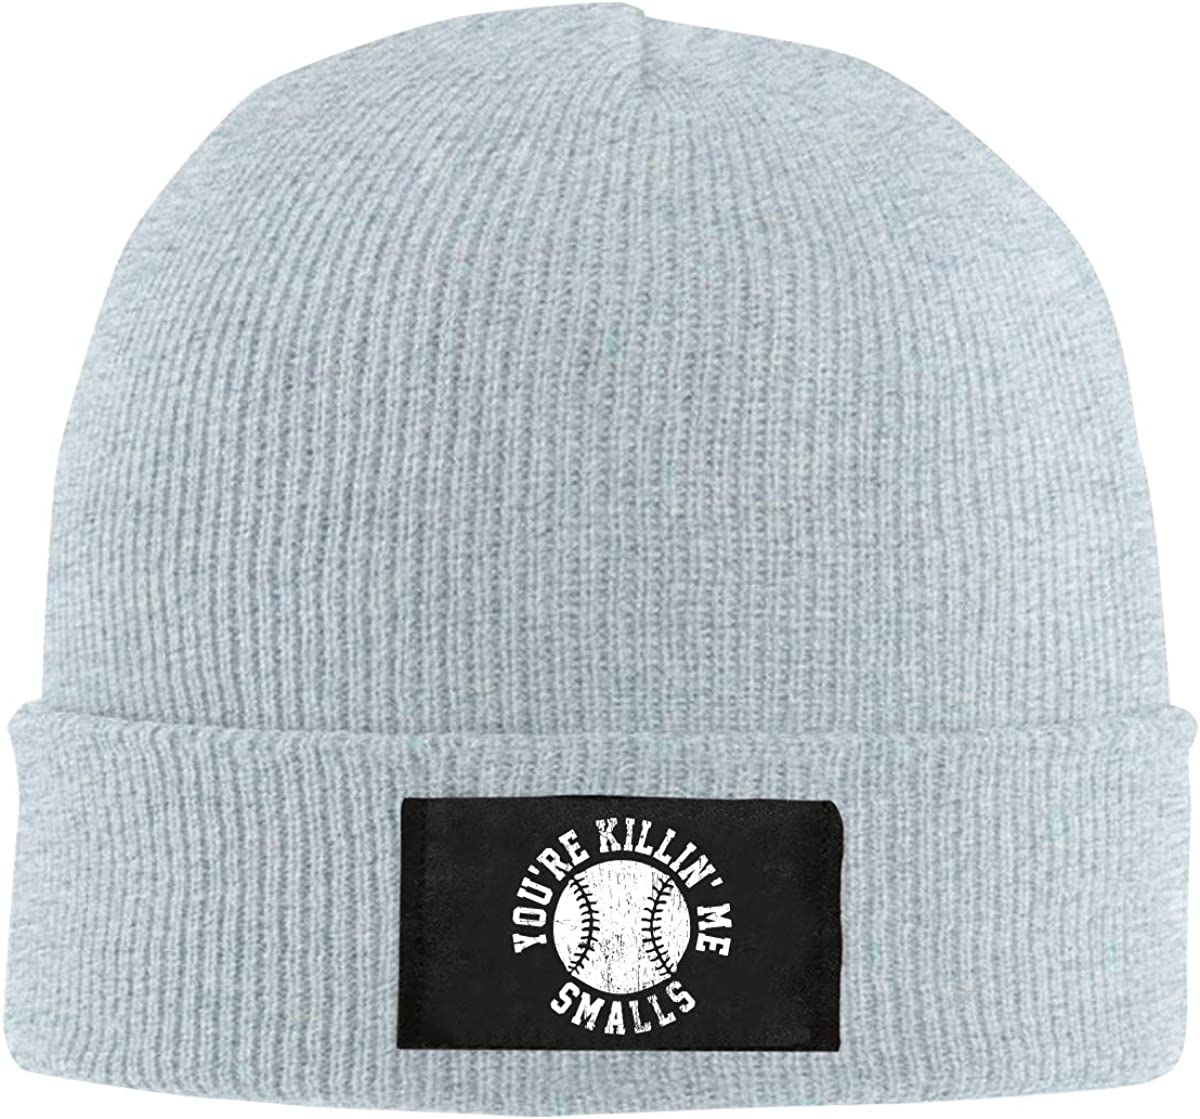 Youre Killing Me Smalls Grunge Softball Men Women Knitted Hat Fashion Warm Fleece Beanie Hat